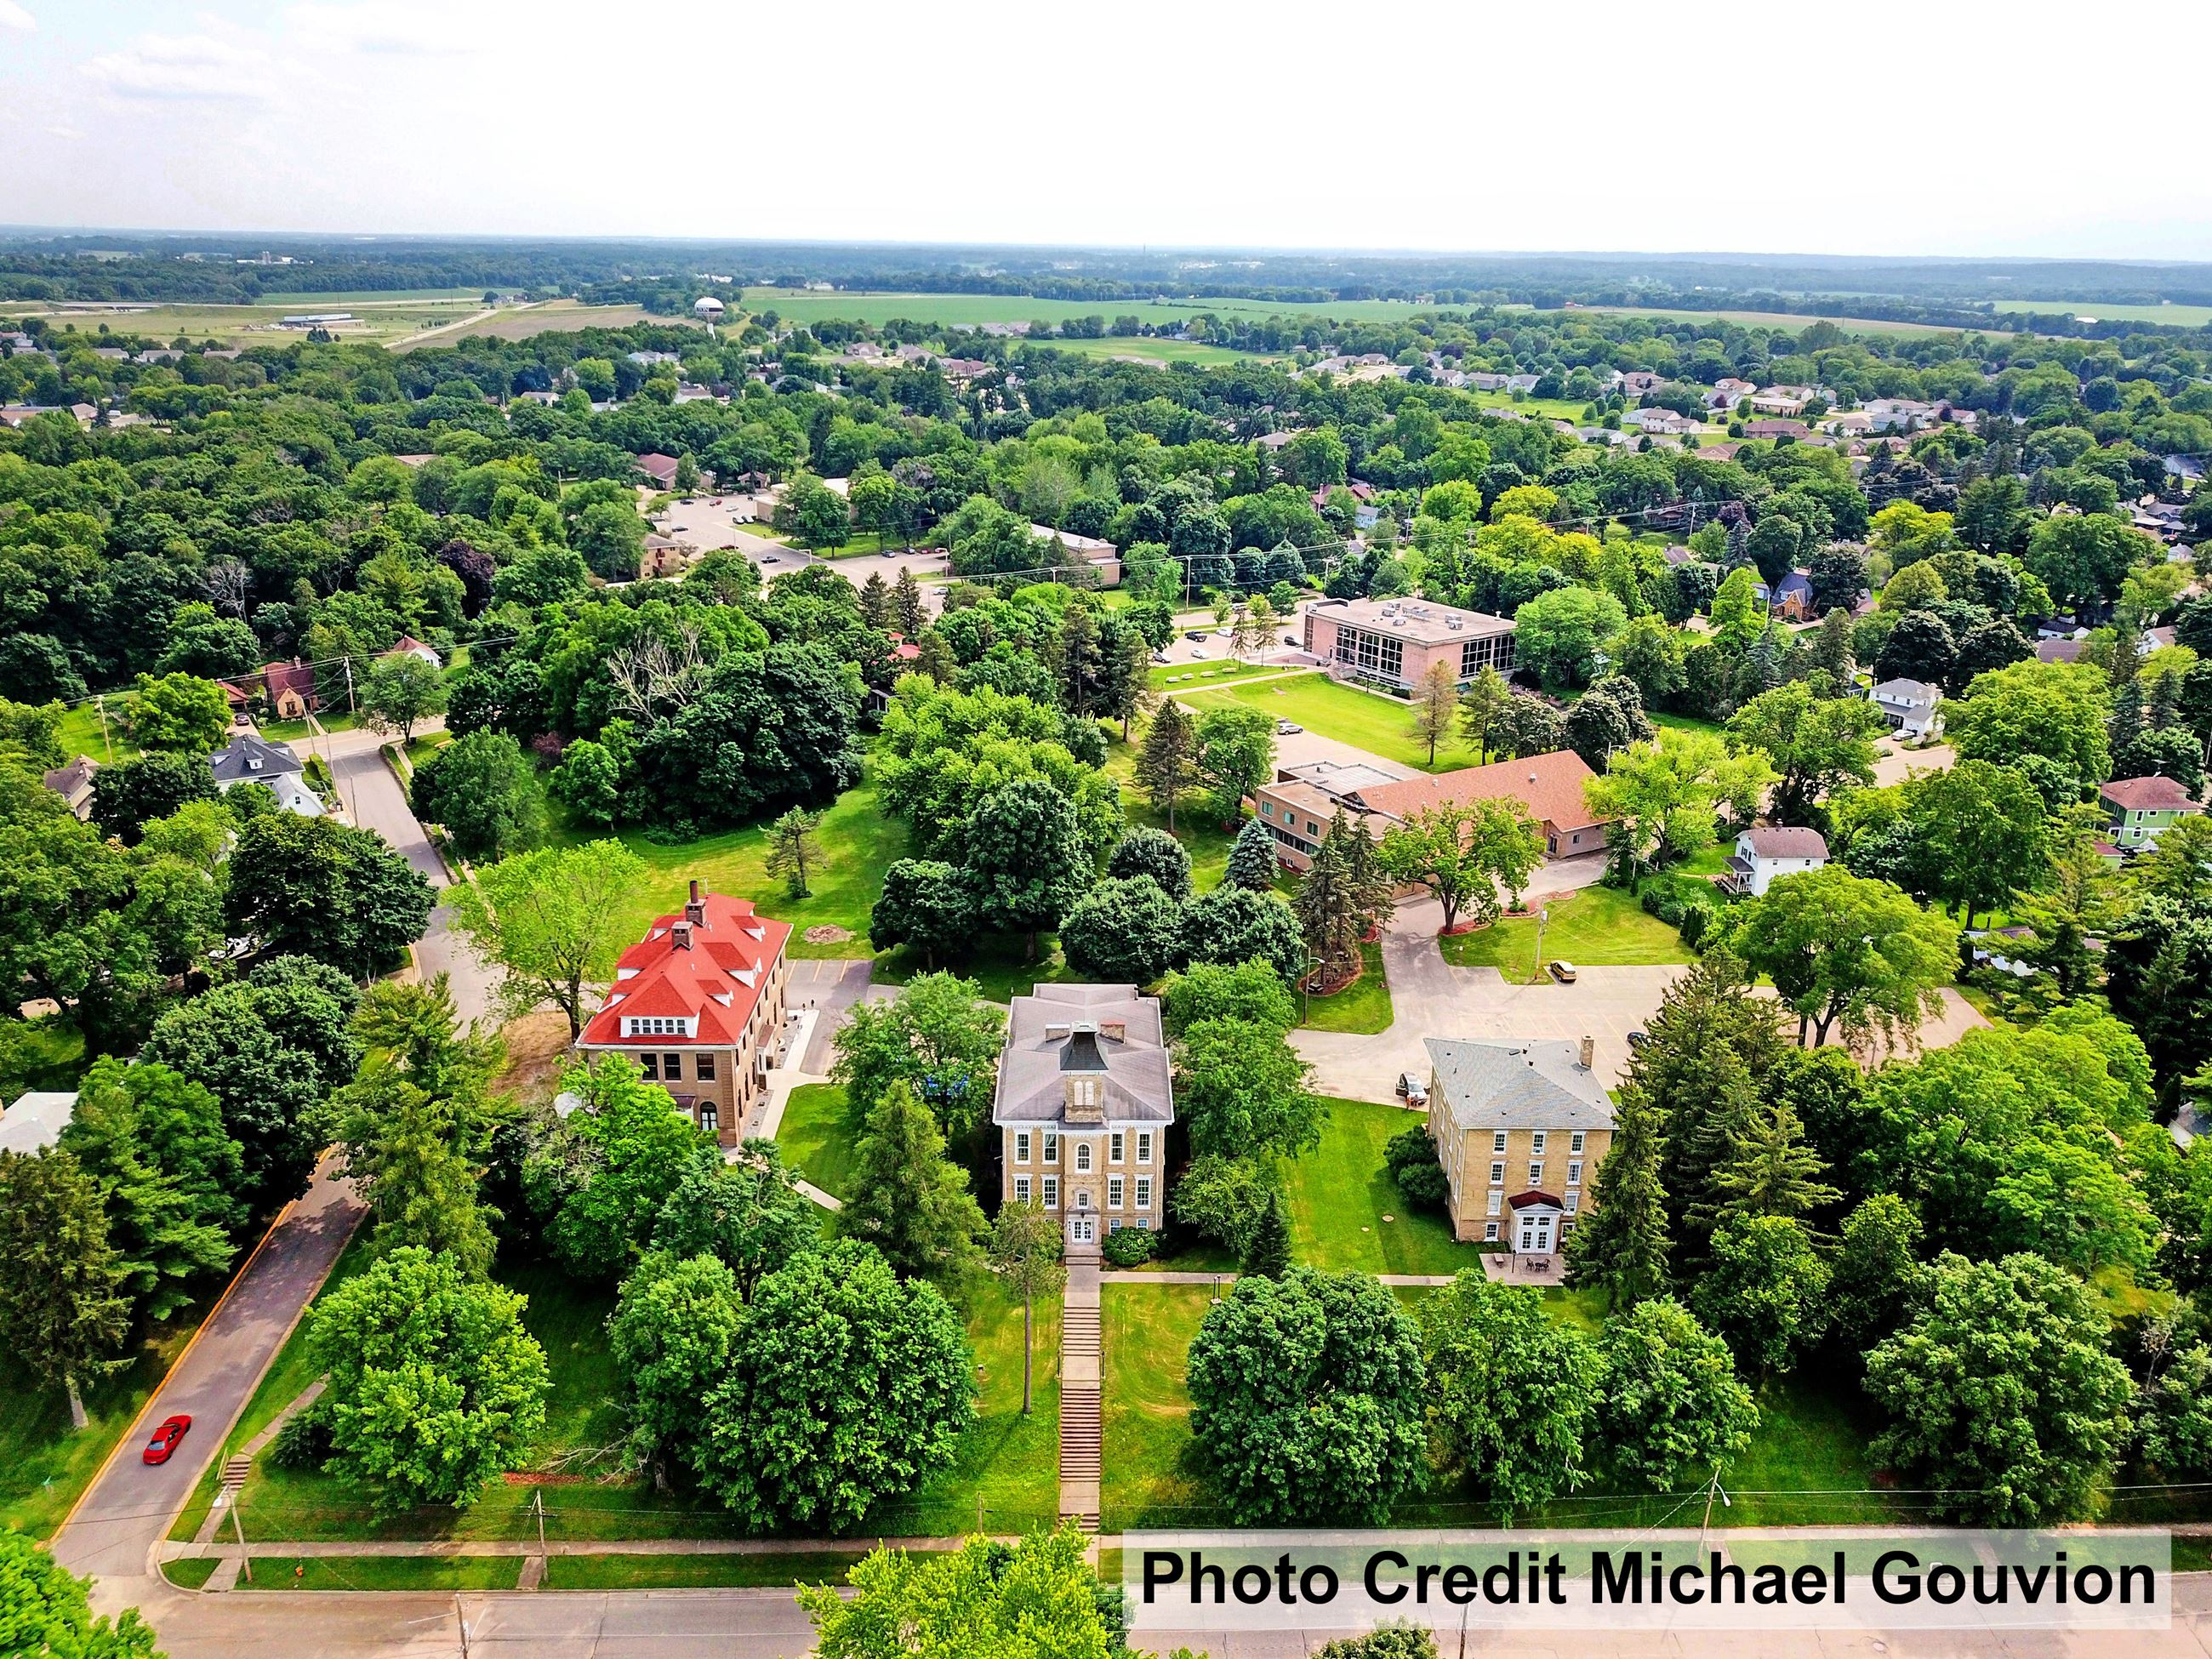 Milton College Historic District Aerial Photo - Photo Credit Michael Gouvion